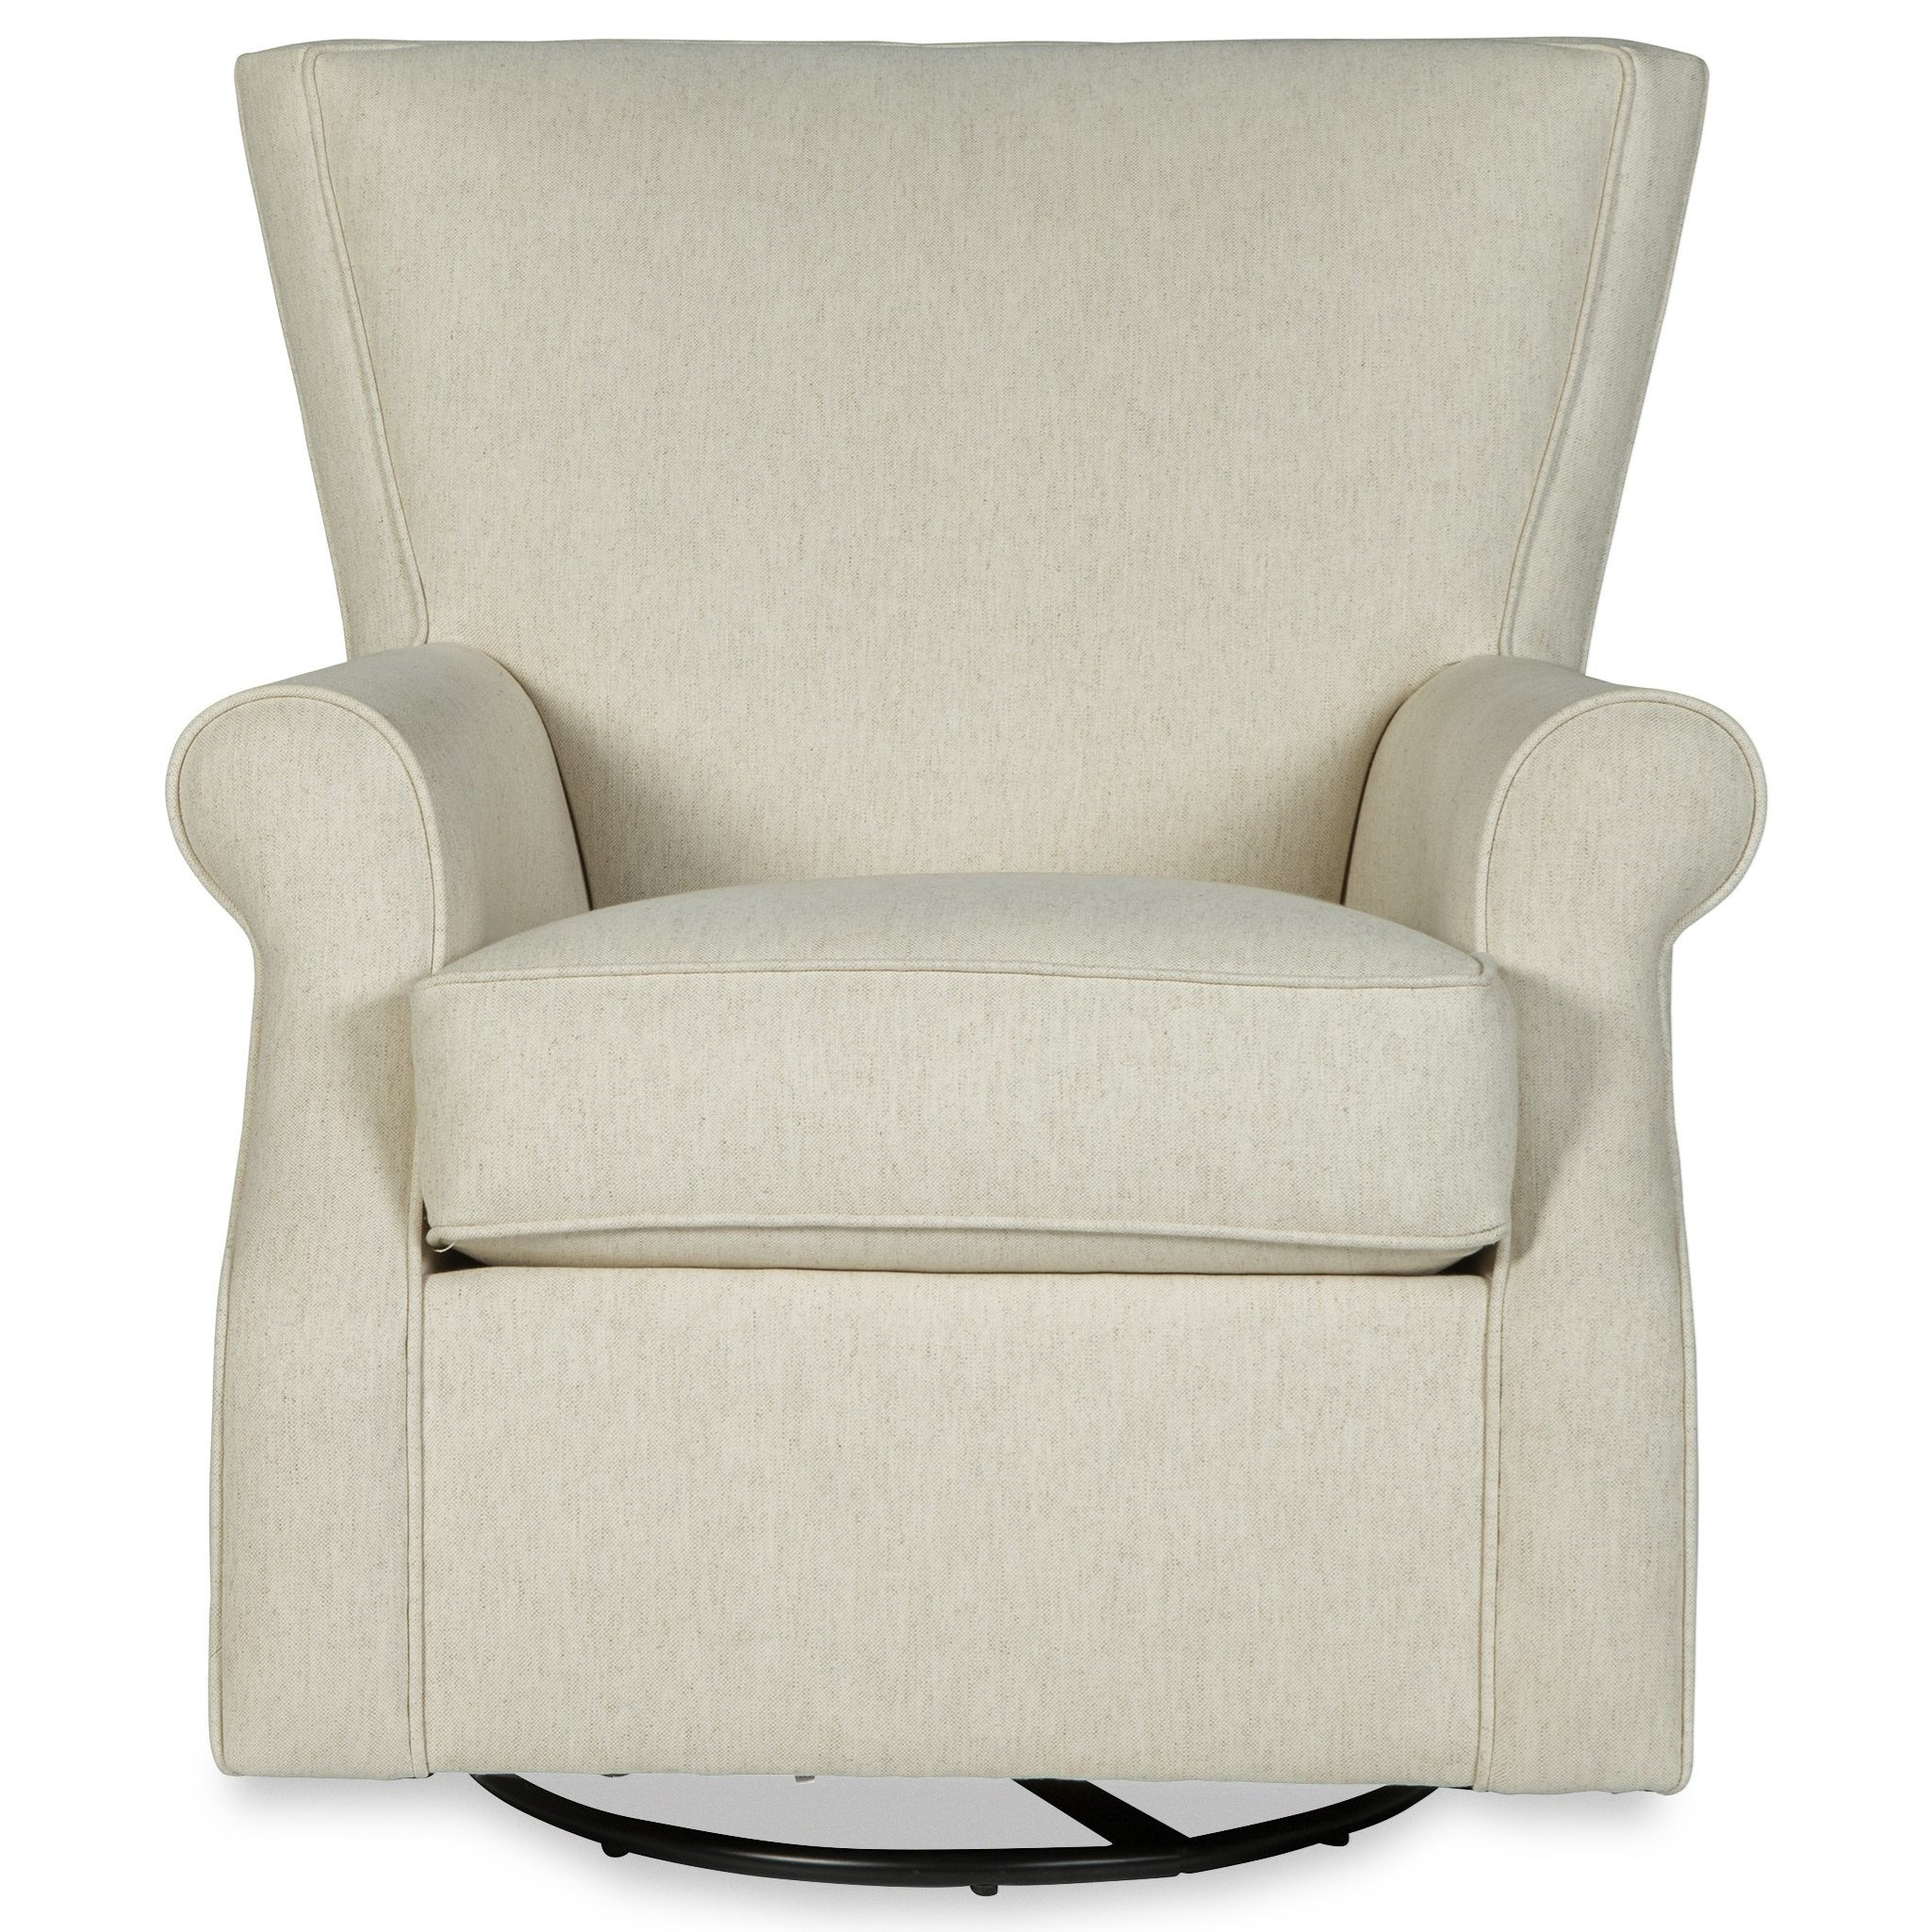 033810SG Swivel Chair by Craftmaster at Jacksonville Furniture Mart